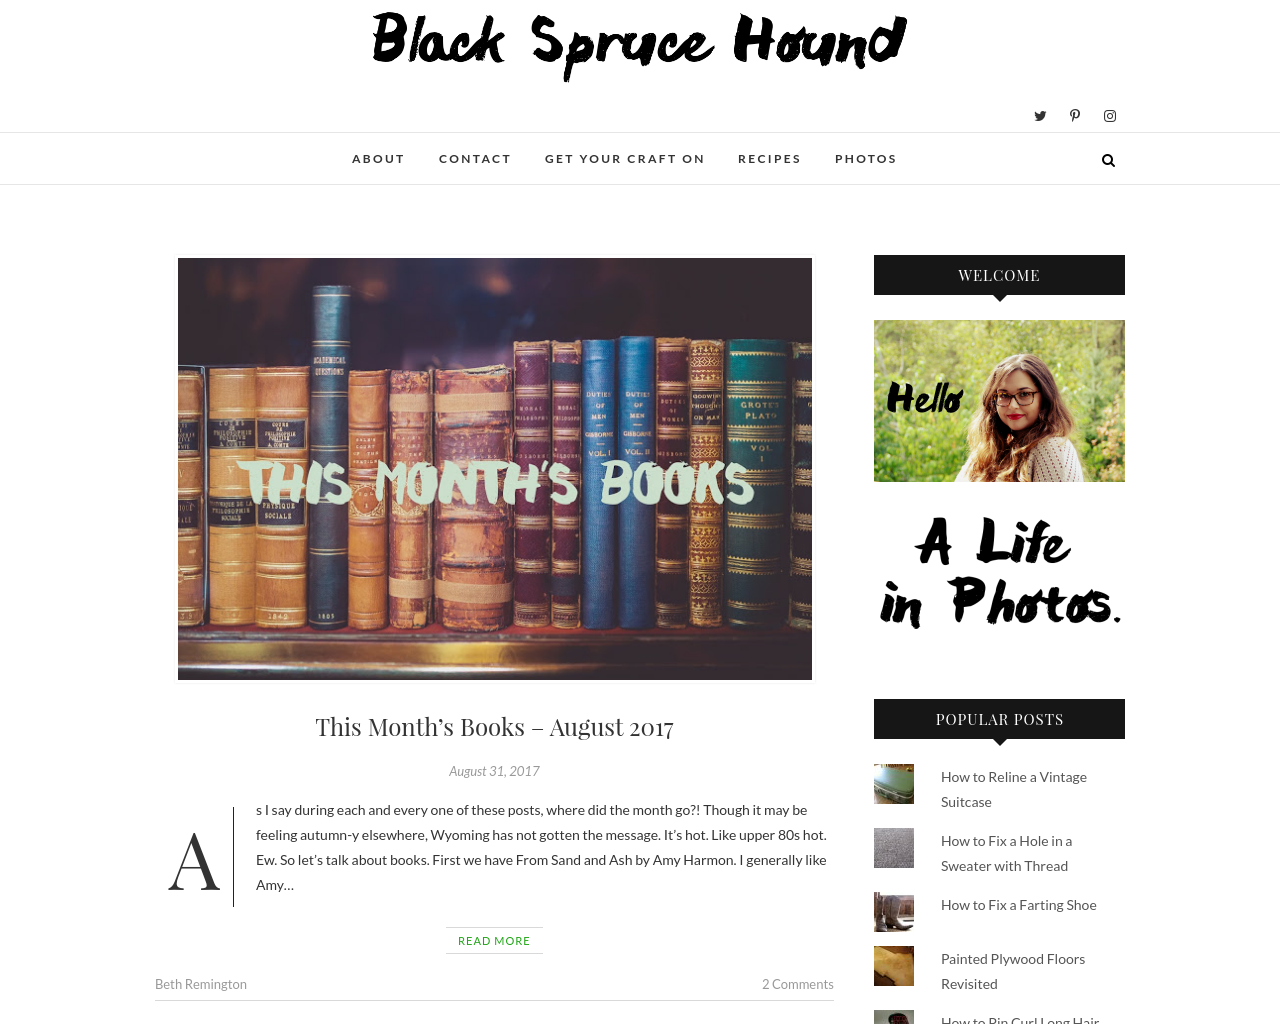 Black-Spruce-Hound-Advertising-Reviews-Pricing